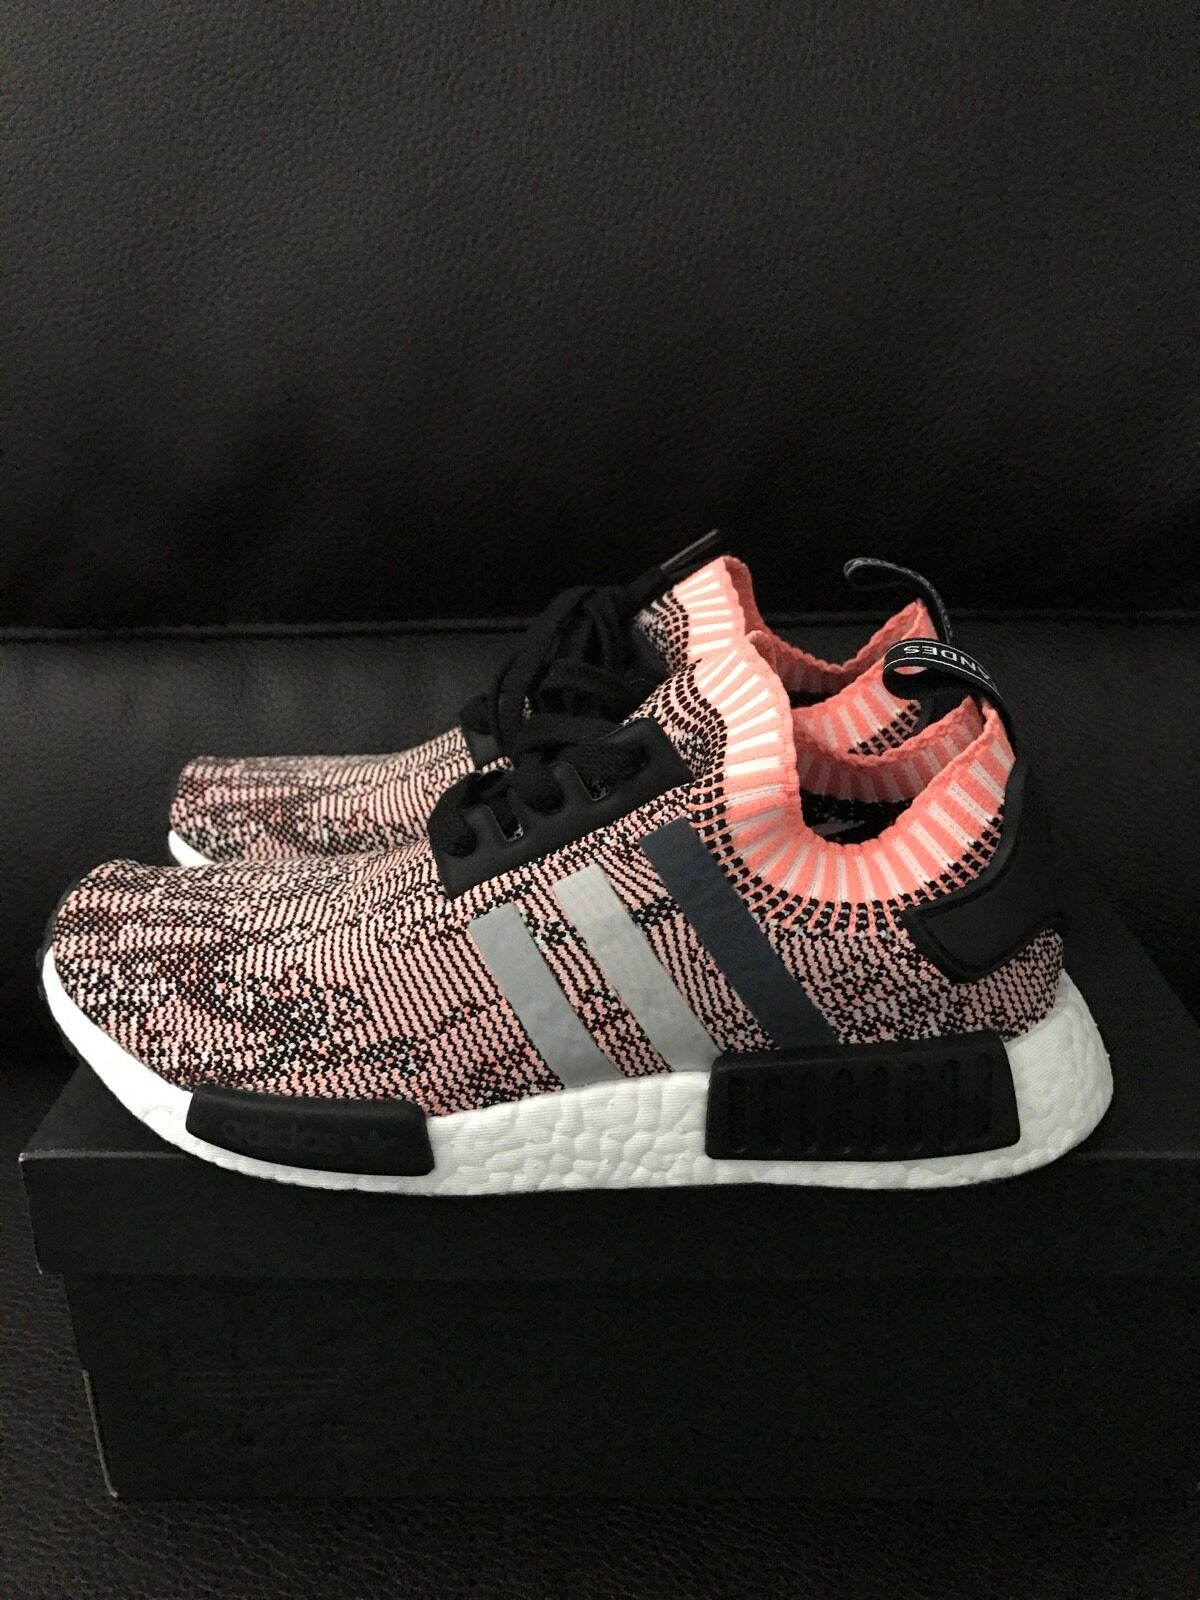 775d012b5 ... Adidas NMD R1 Primeknit Boost Boost Boost Salmon Pink Camo Athletic  Sneakers Running Shoe 8 355c11 ...